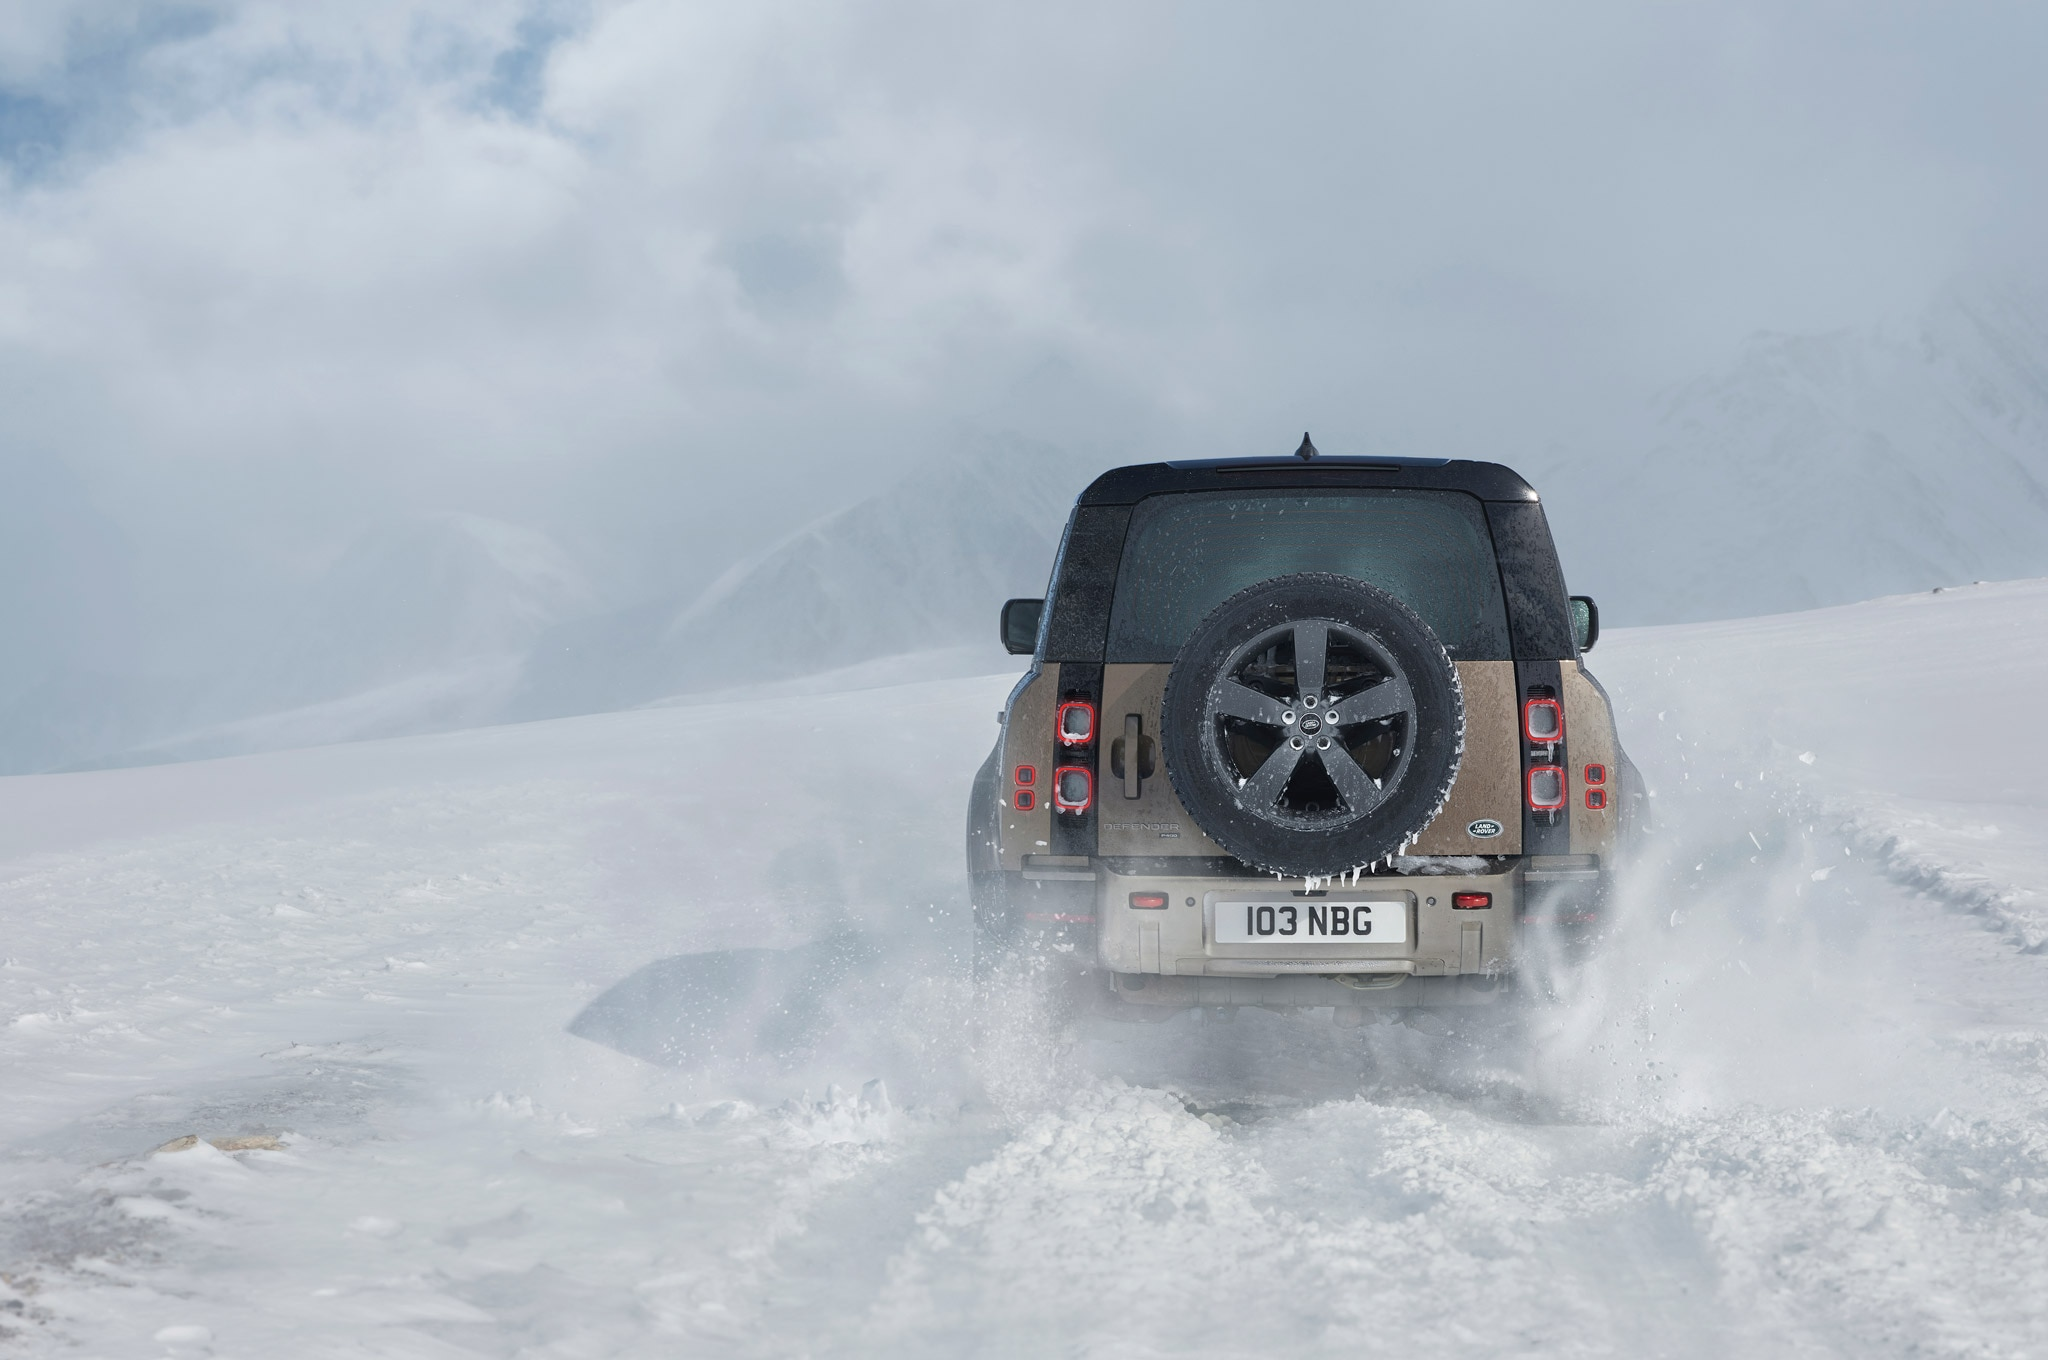 2020 land rover defender 110 off road snow 02